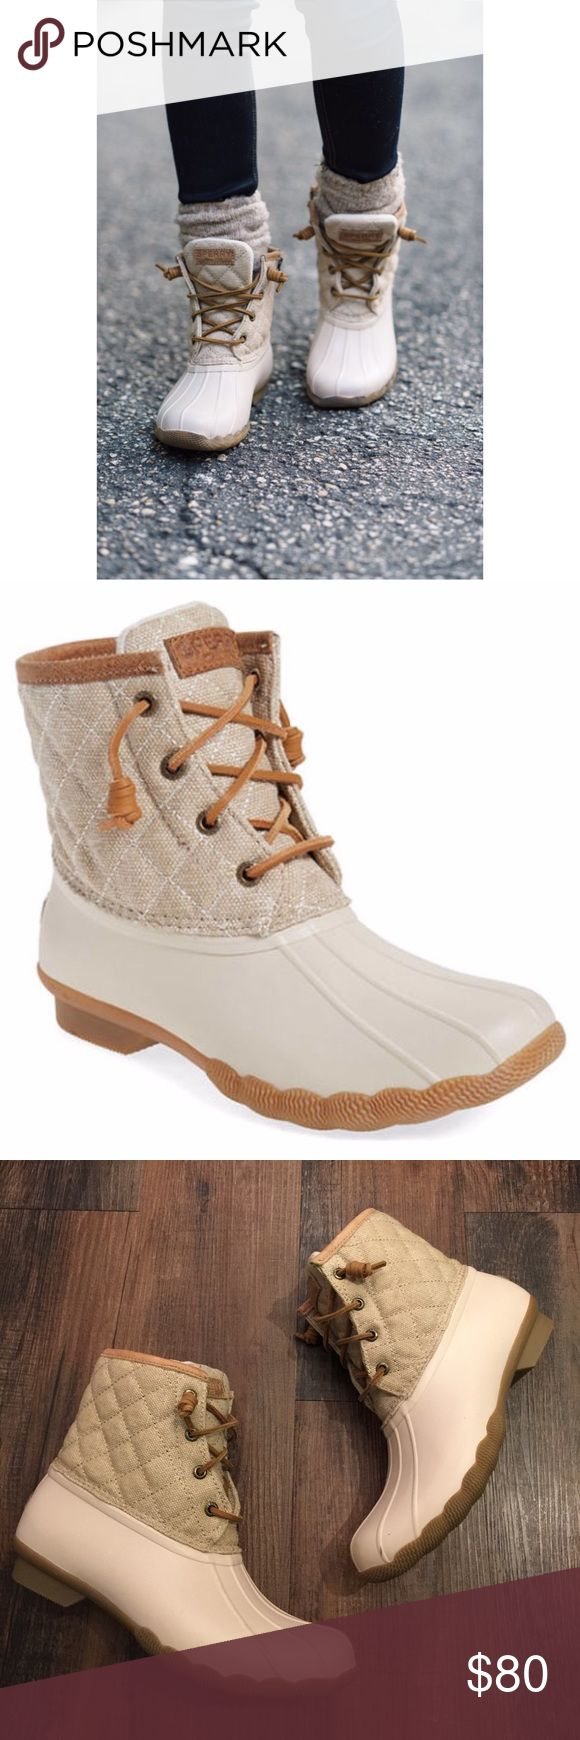 "Sperry Top Sider Waterproof Duck Boots Sperry Top Sider Cream and Tan Waterproof Duck Boots.  Quilted shaft,  3.46"" shaft height.  Round toe. Side zipper closure.  Small marks from storage/ shoes are NWOT. Sperry Top-Sider Shoes Winter & Rain Boots"